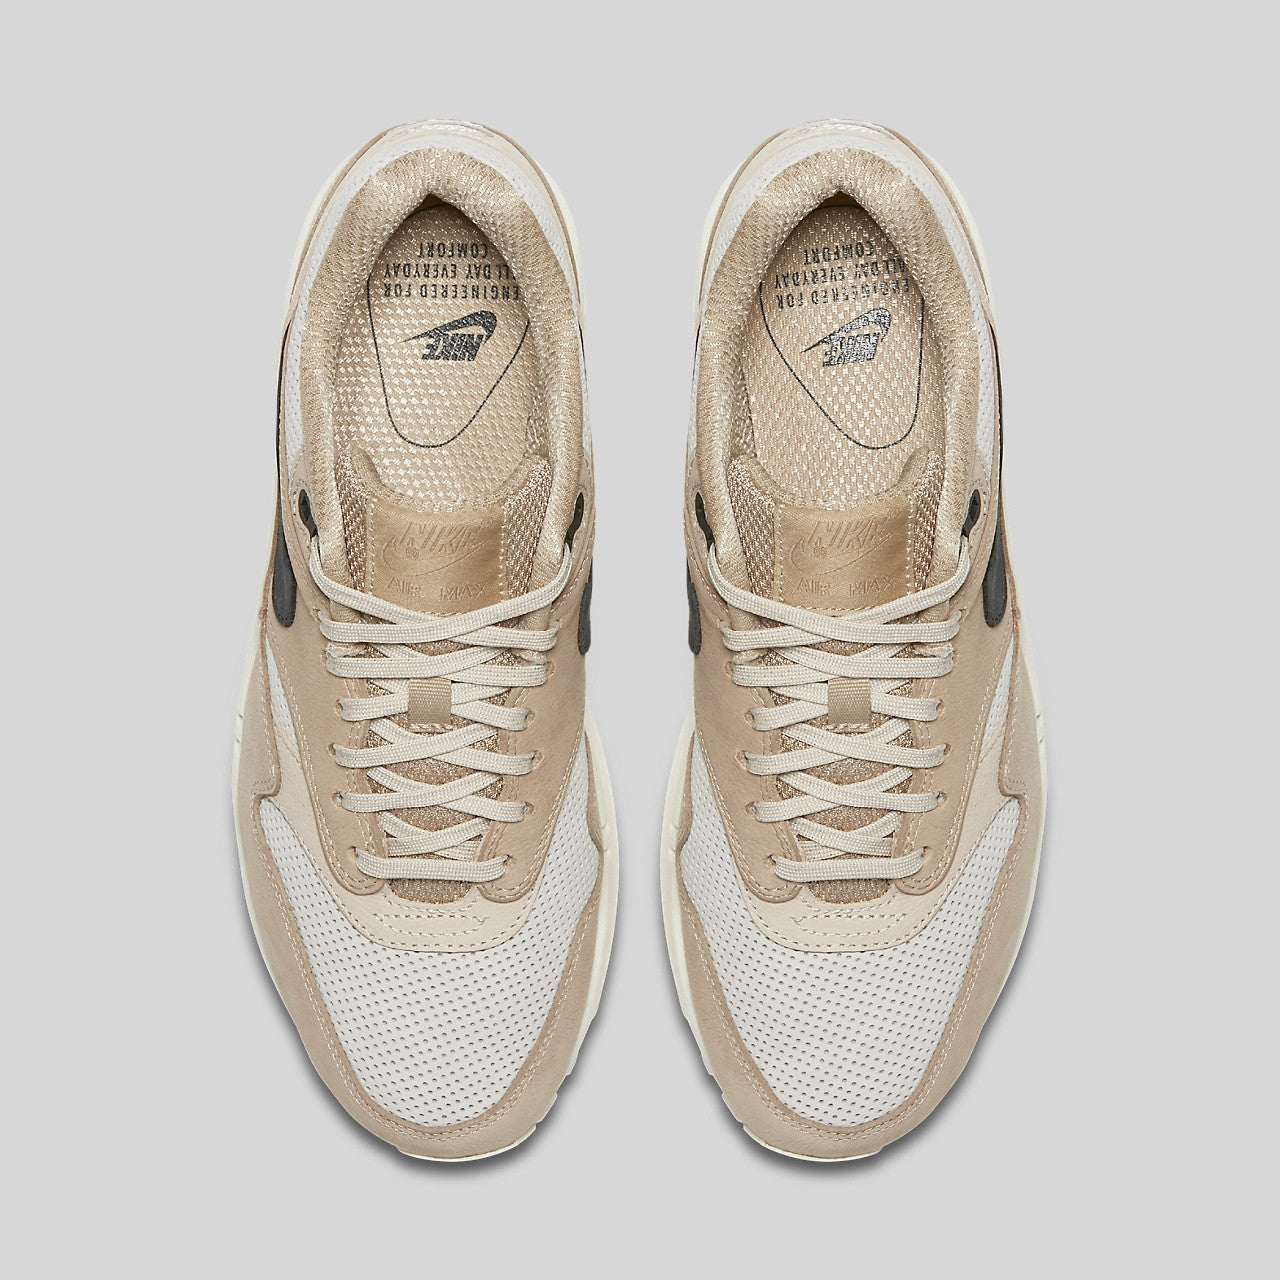 7c951ed43cd9 Nike Wmns Air Max 1 Pinnacle Mushroom. Item Number  839608-201